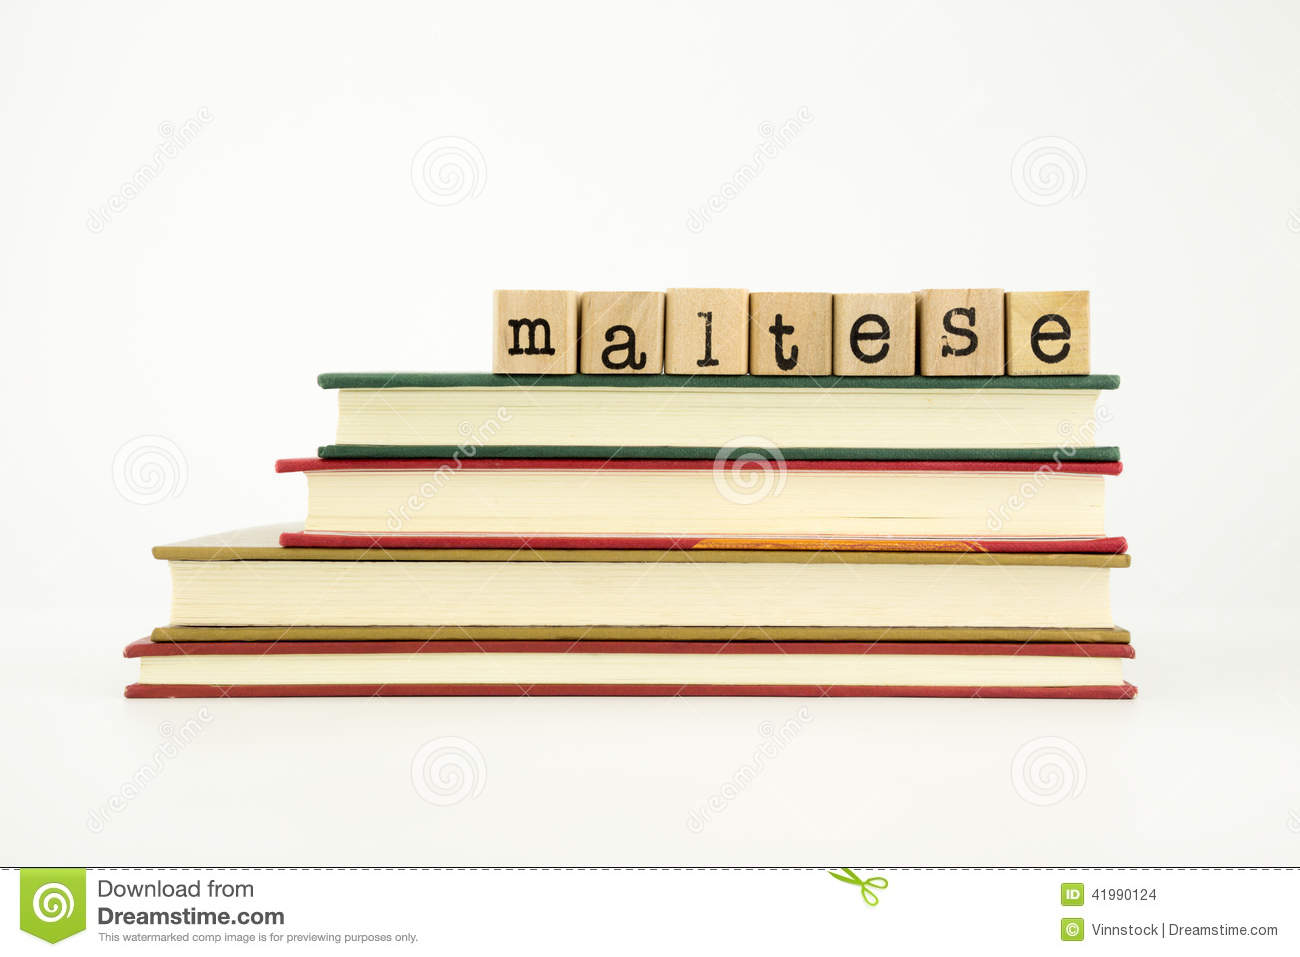 Maltese Language Word On Wood Stamps And Books Stock Photo